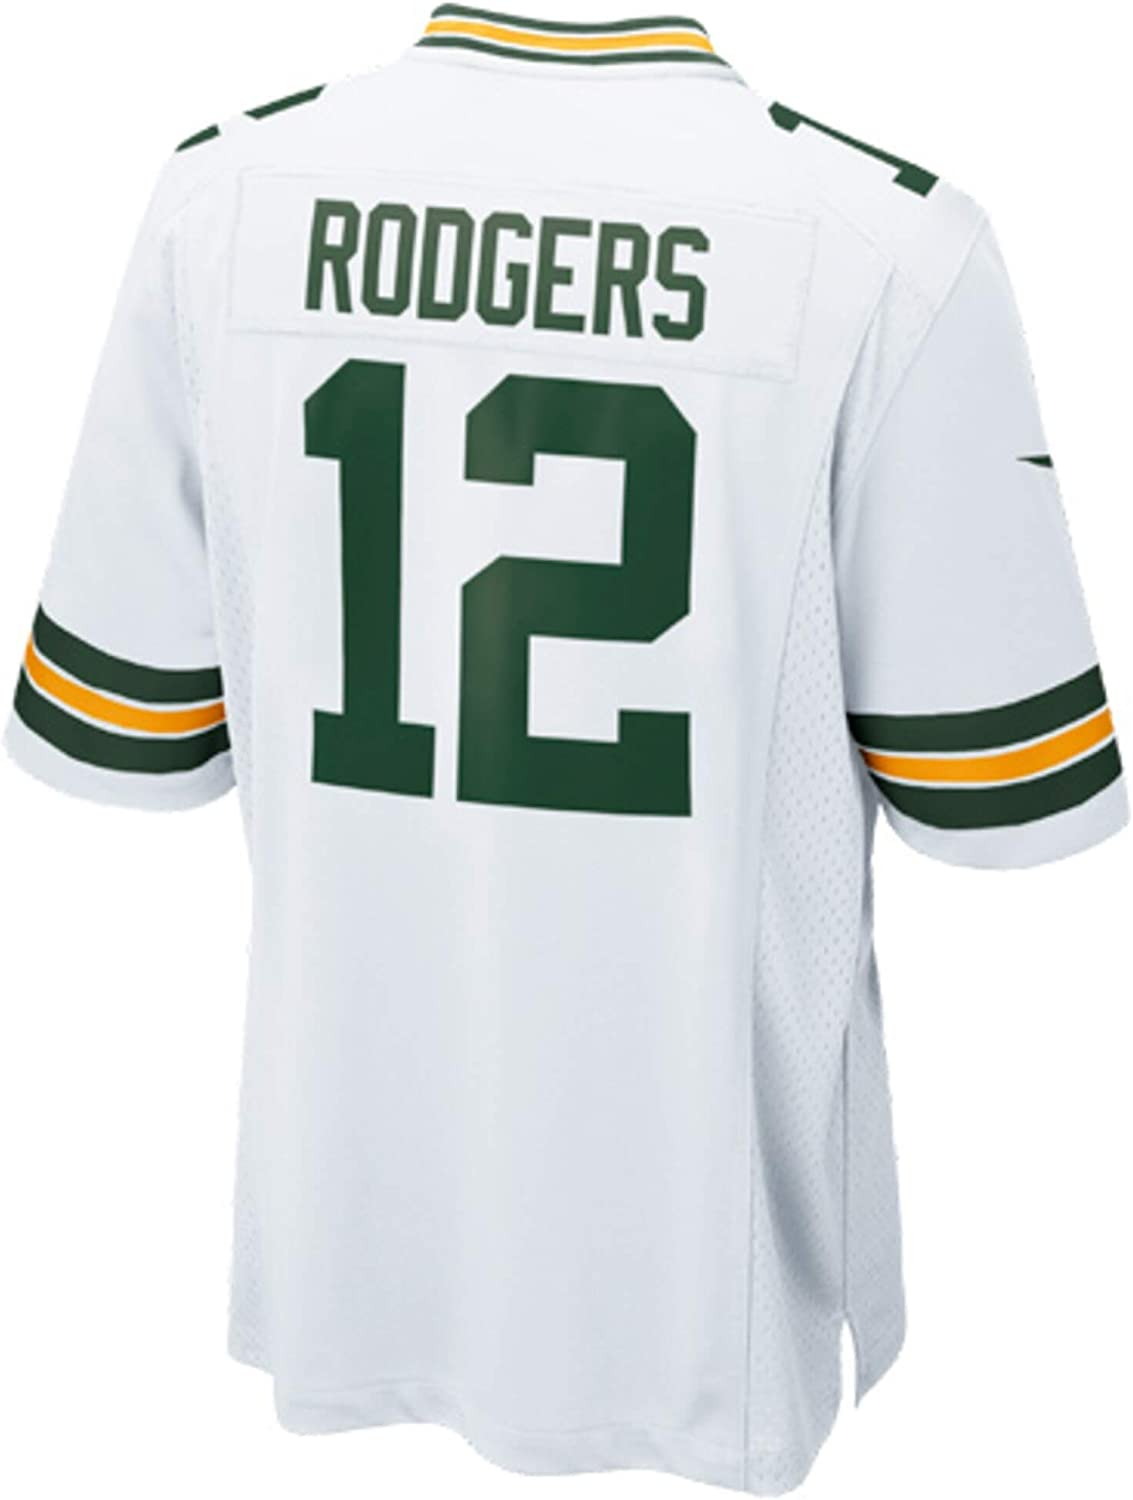 Nike Aaron Rodgers Green Bay Packers NFL Boys Youth 8-20 White Road On-Field Jersey